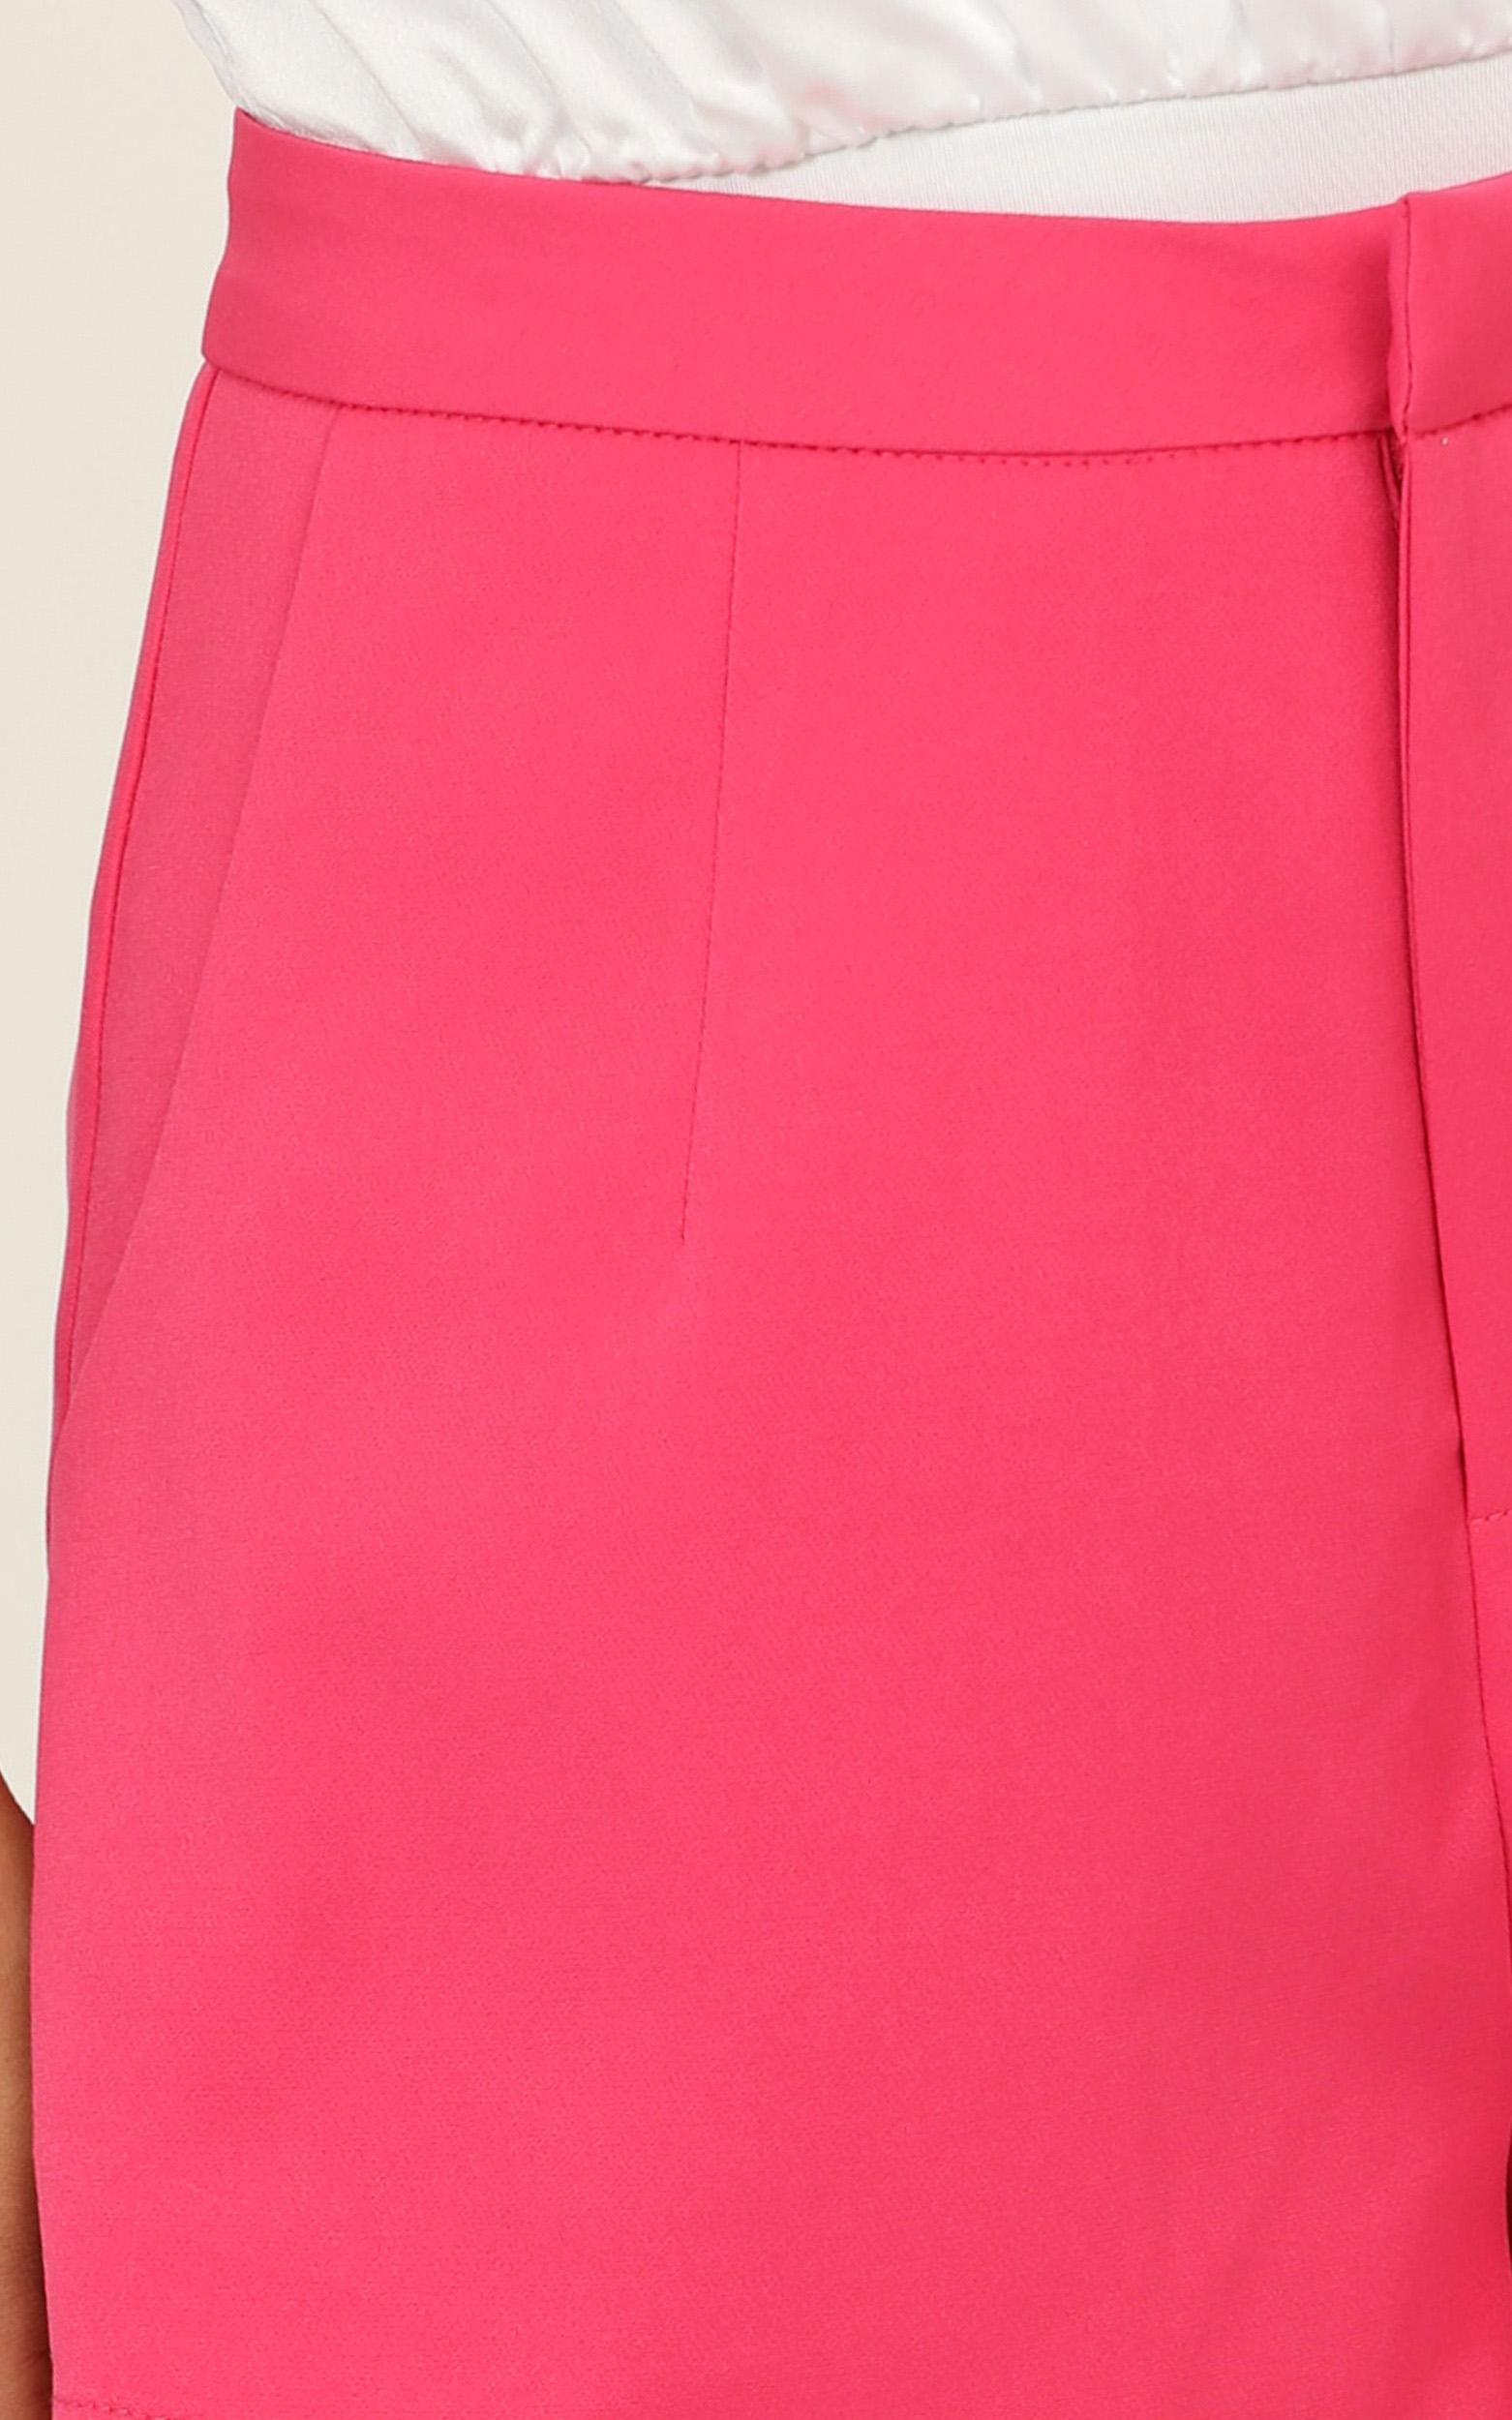 Systems Shorts in hot pink - 14 (XL), Pink, hi-res image number null